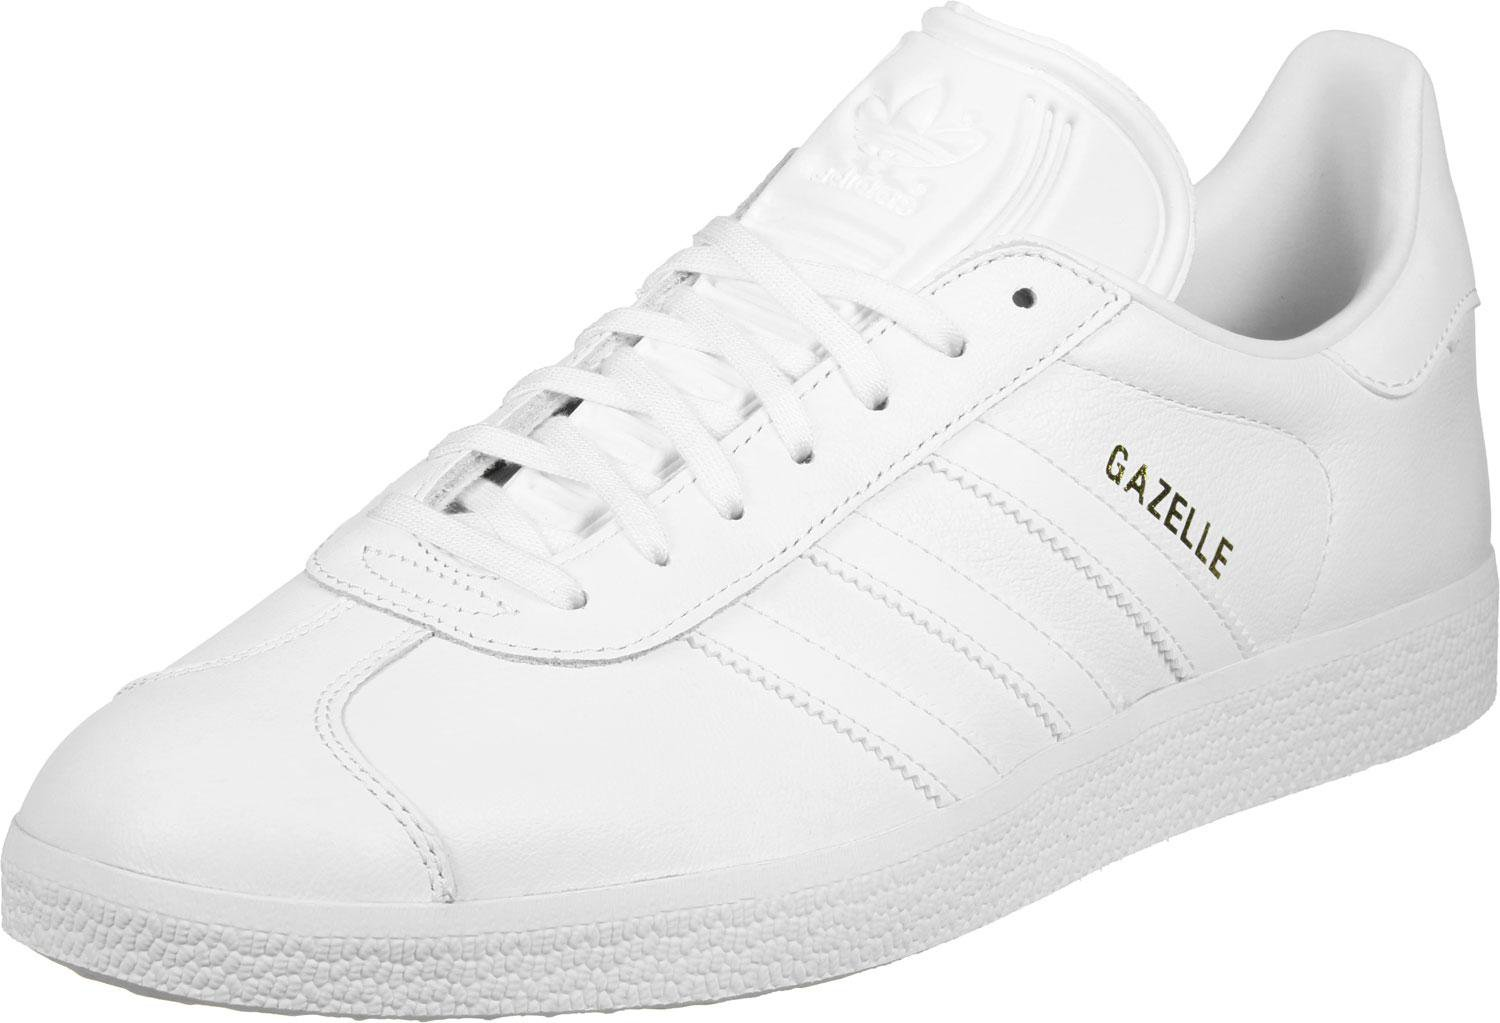 Adidas Gazelle white/white/gold metallic